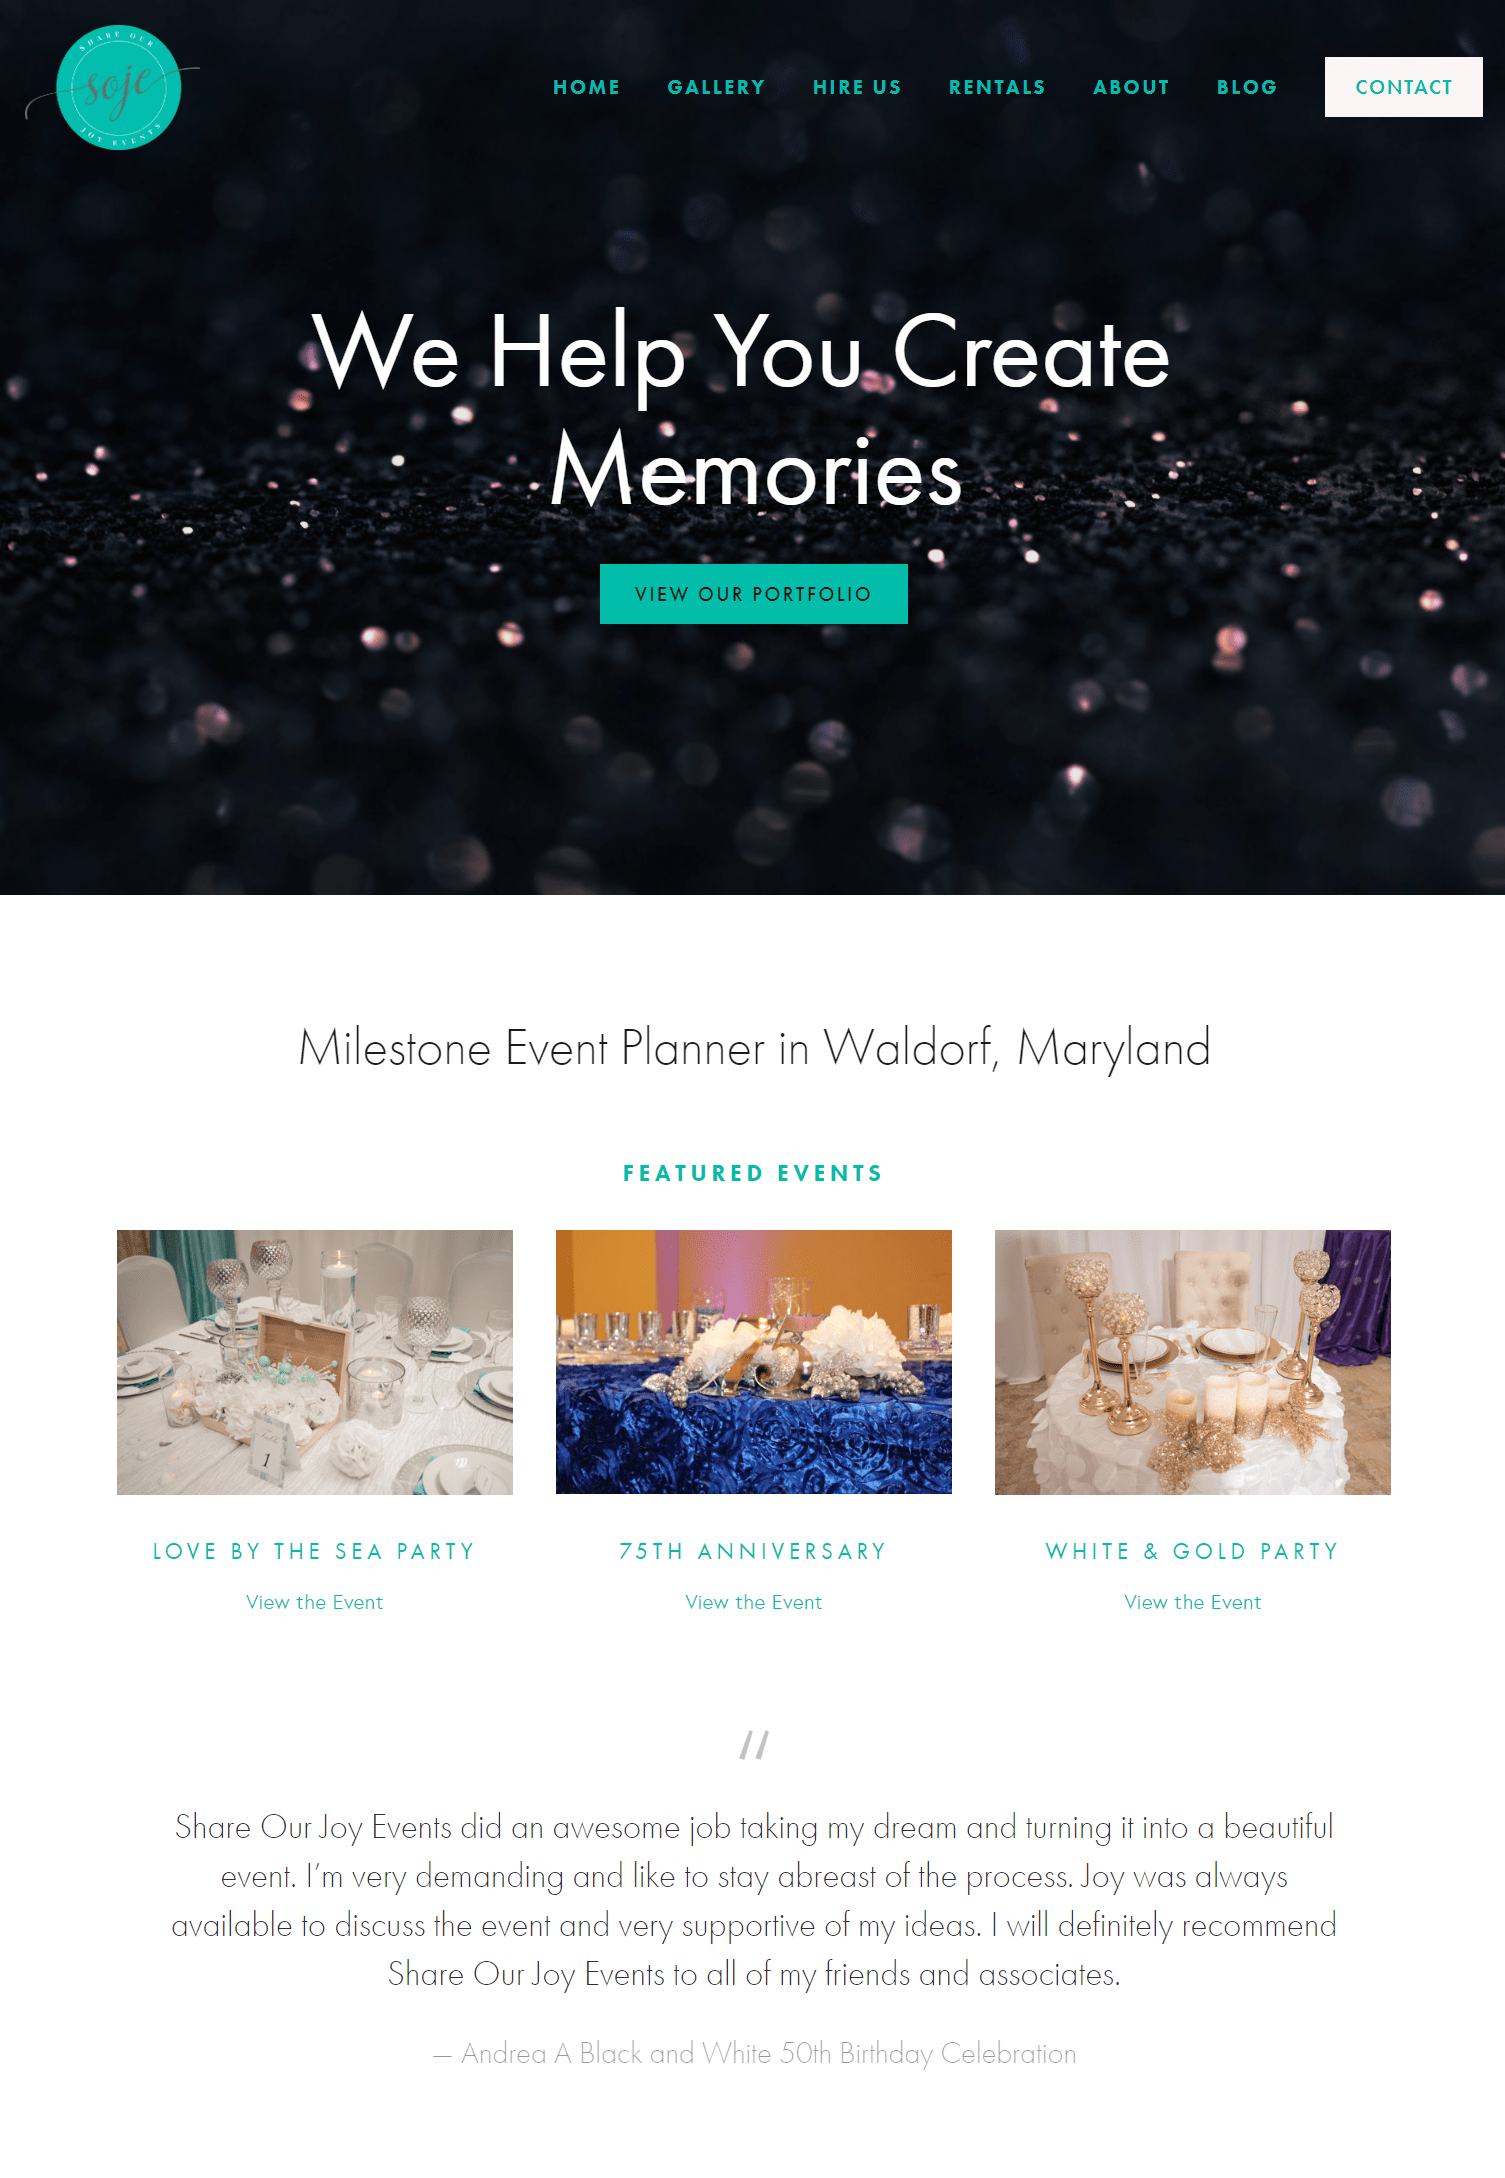 Website portfolio share our joy events